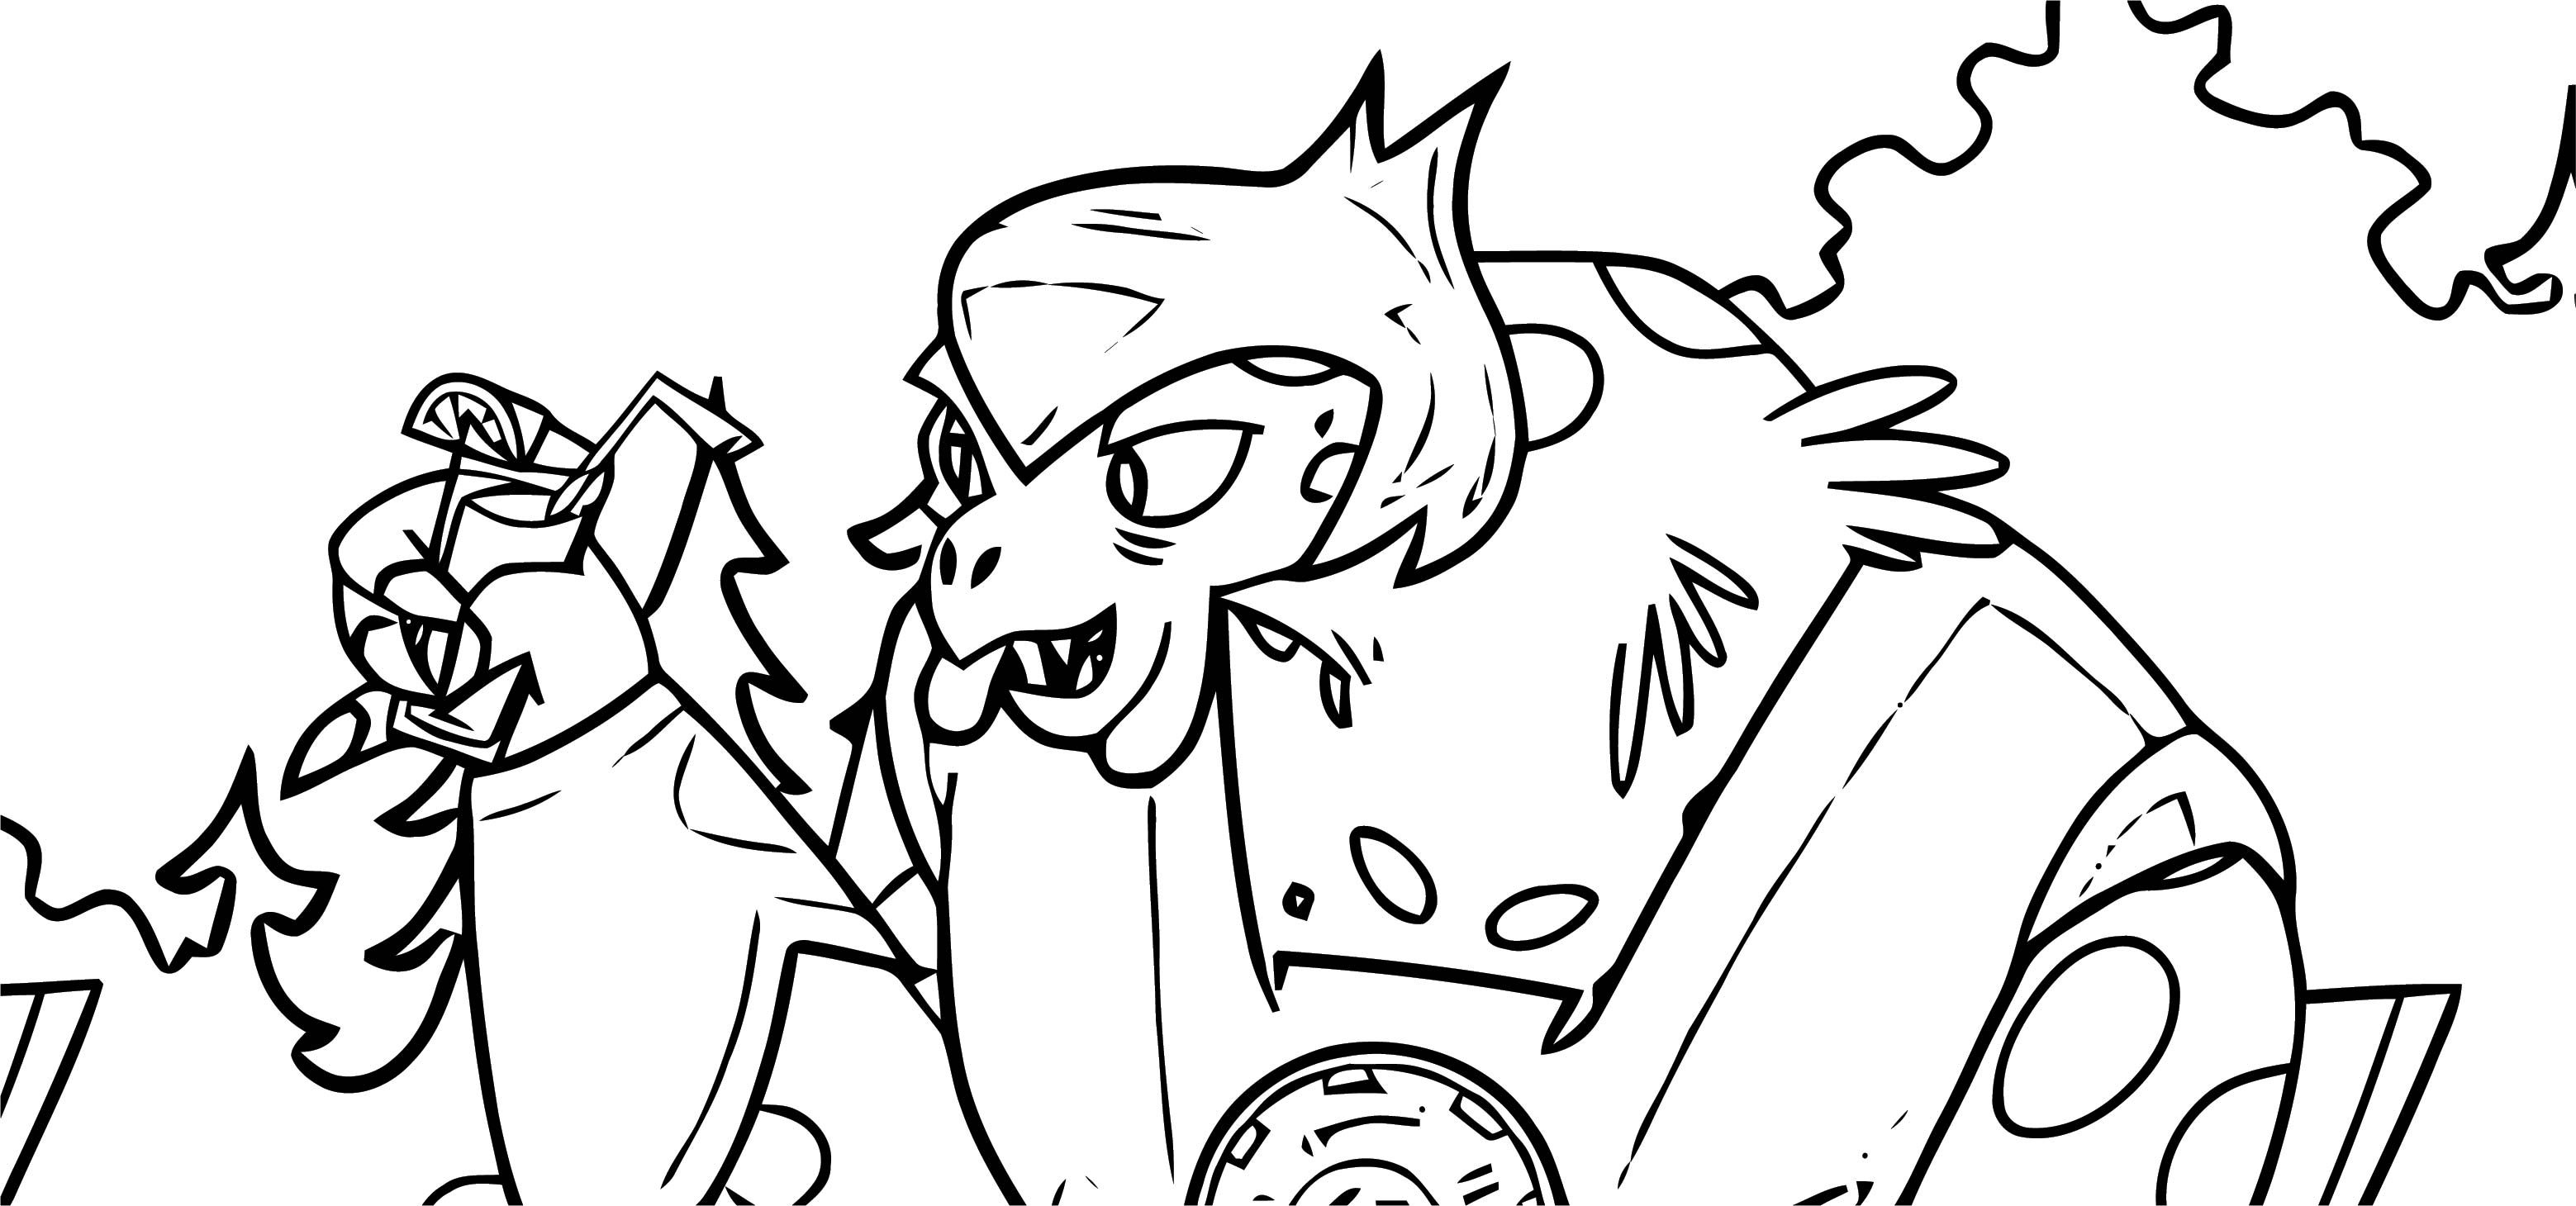 Snoobsstrike Coloring Page   Wecoloringpage.com